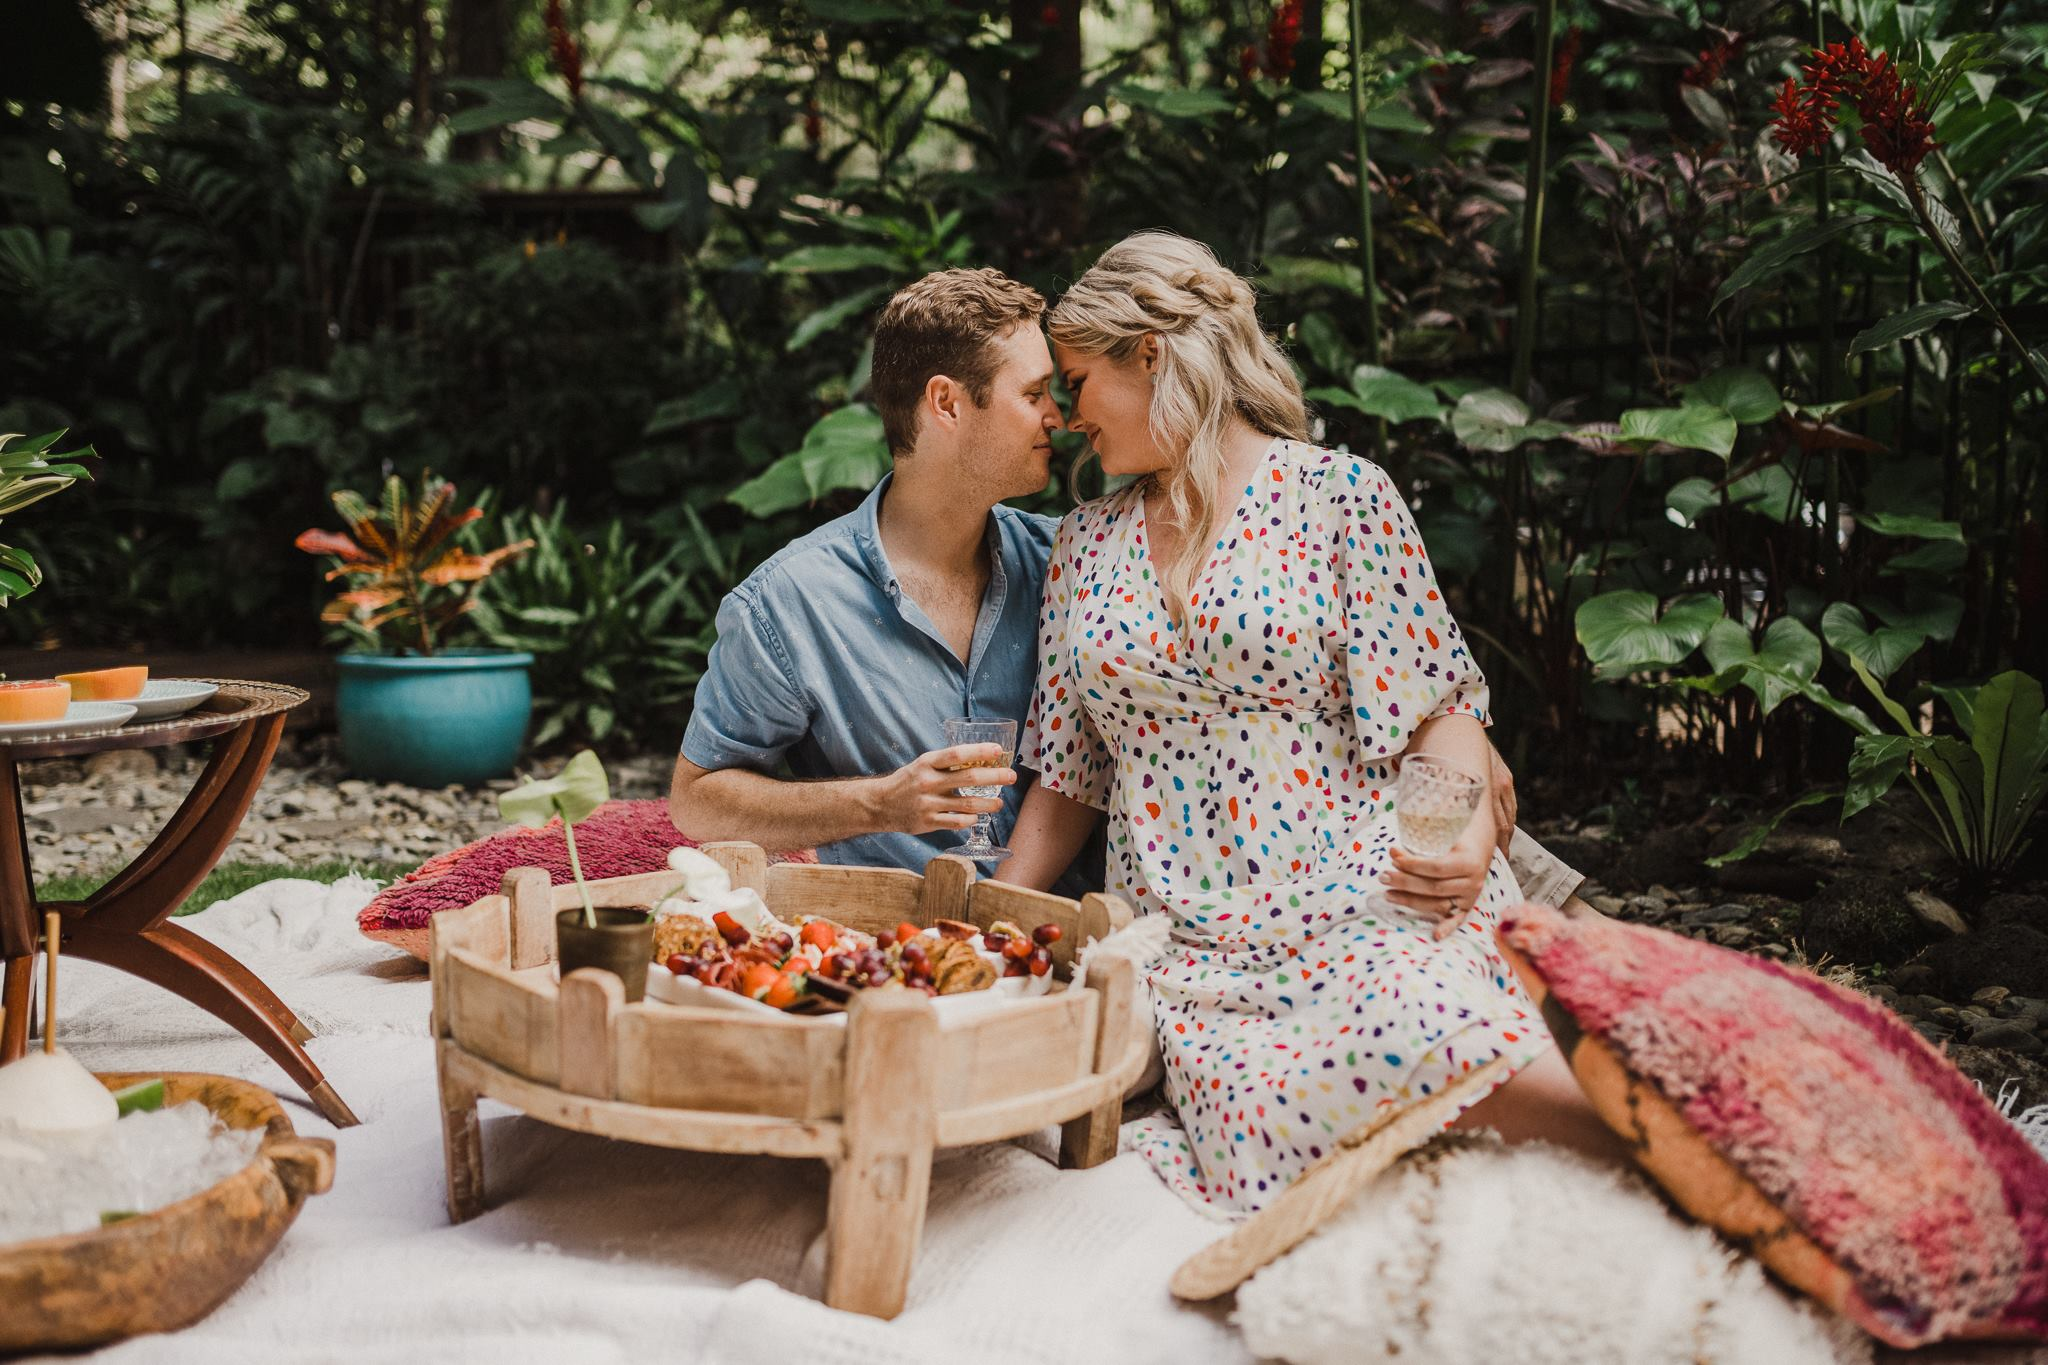 The Collection Co - Cairns - Catering - Styling - Picnic - Grazing- Engagament Photoshoot-3.jpg